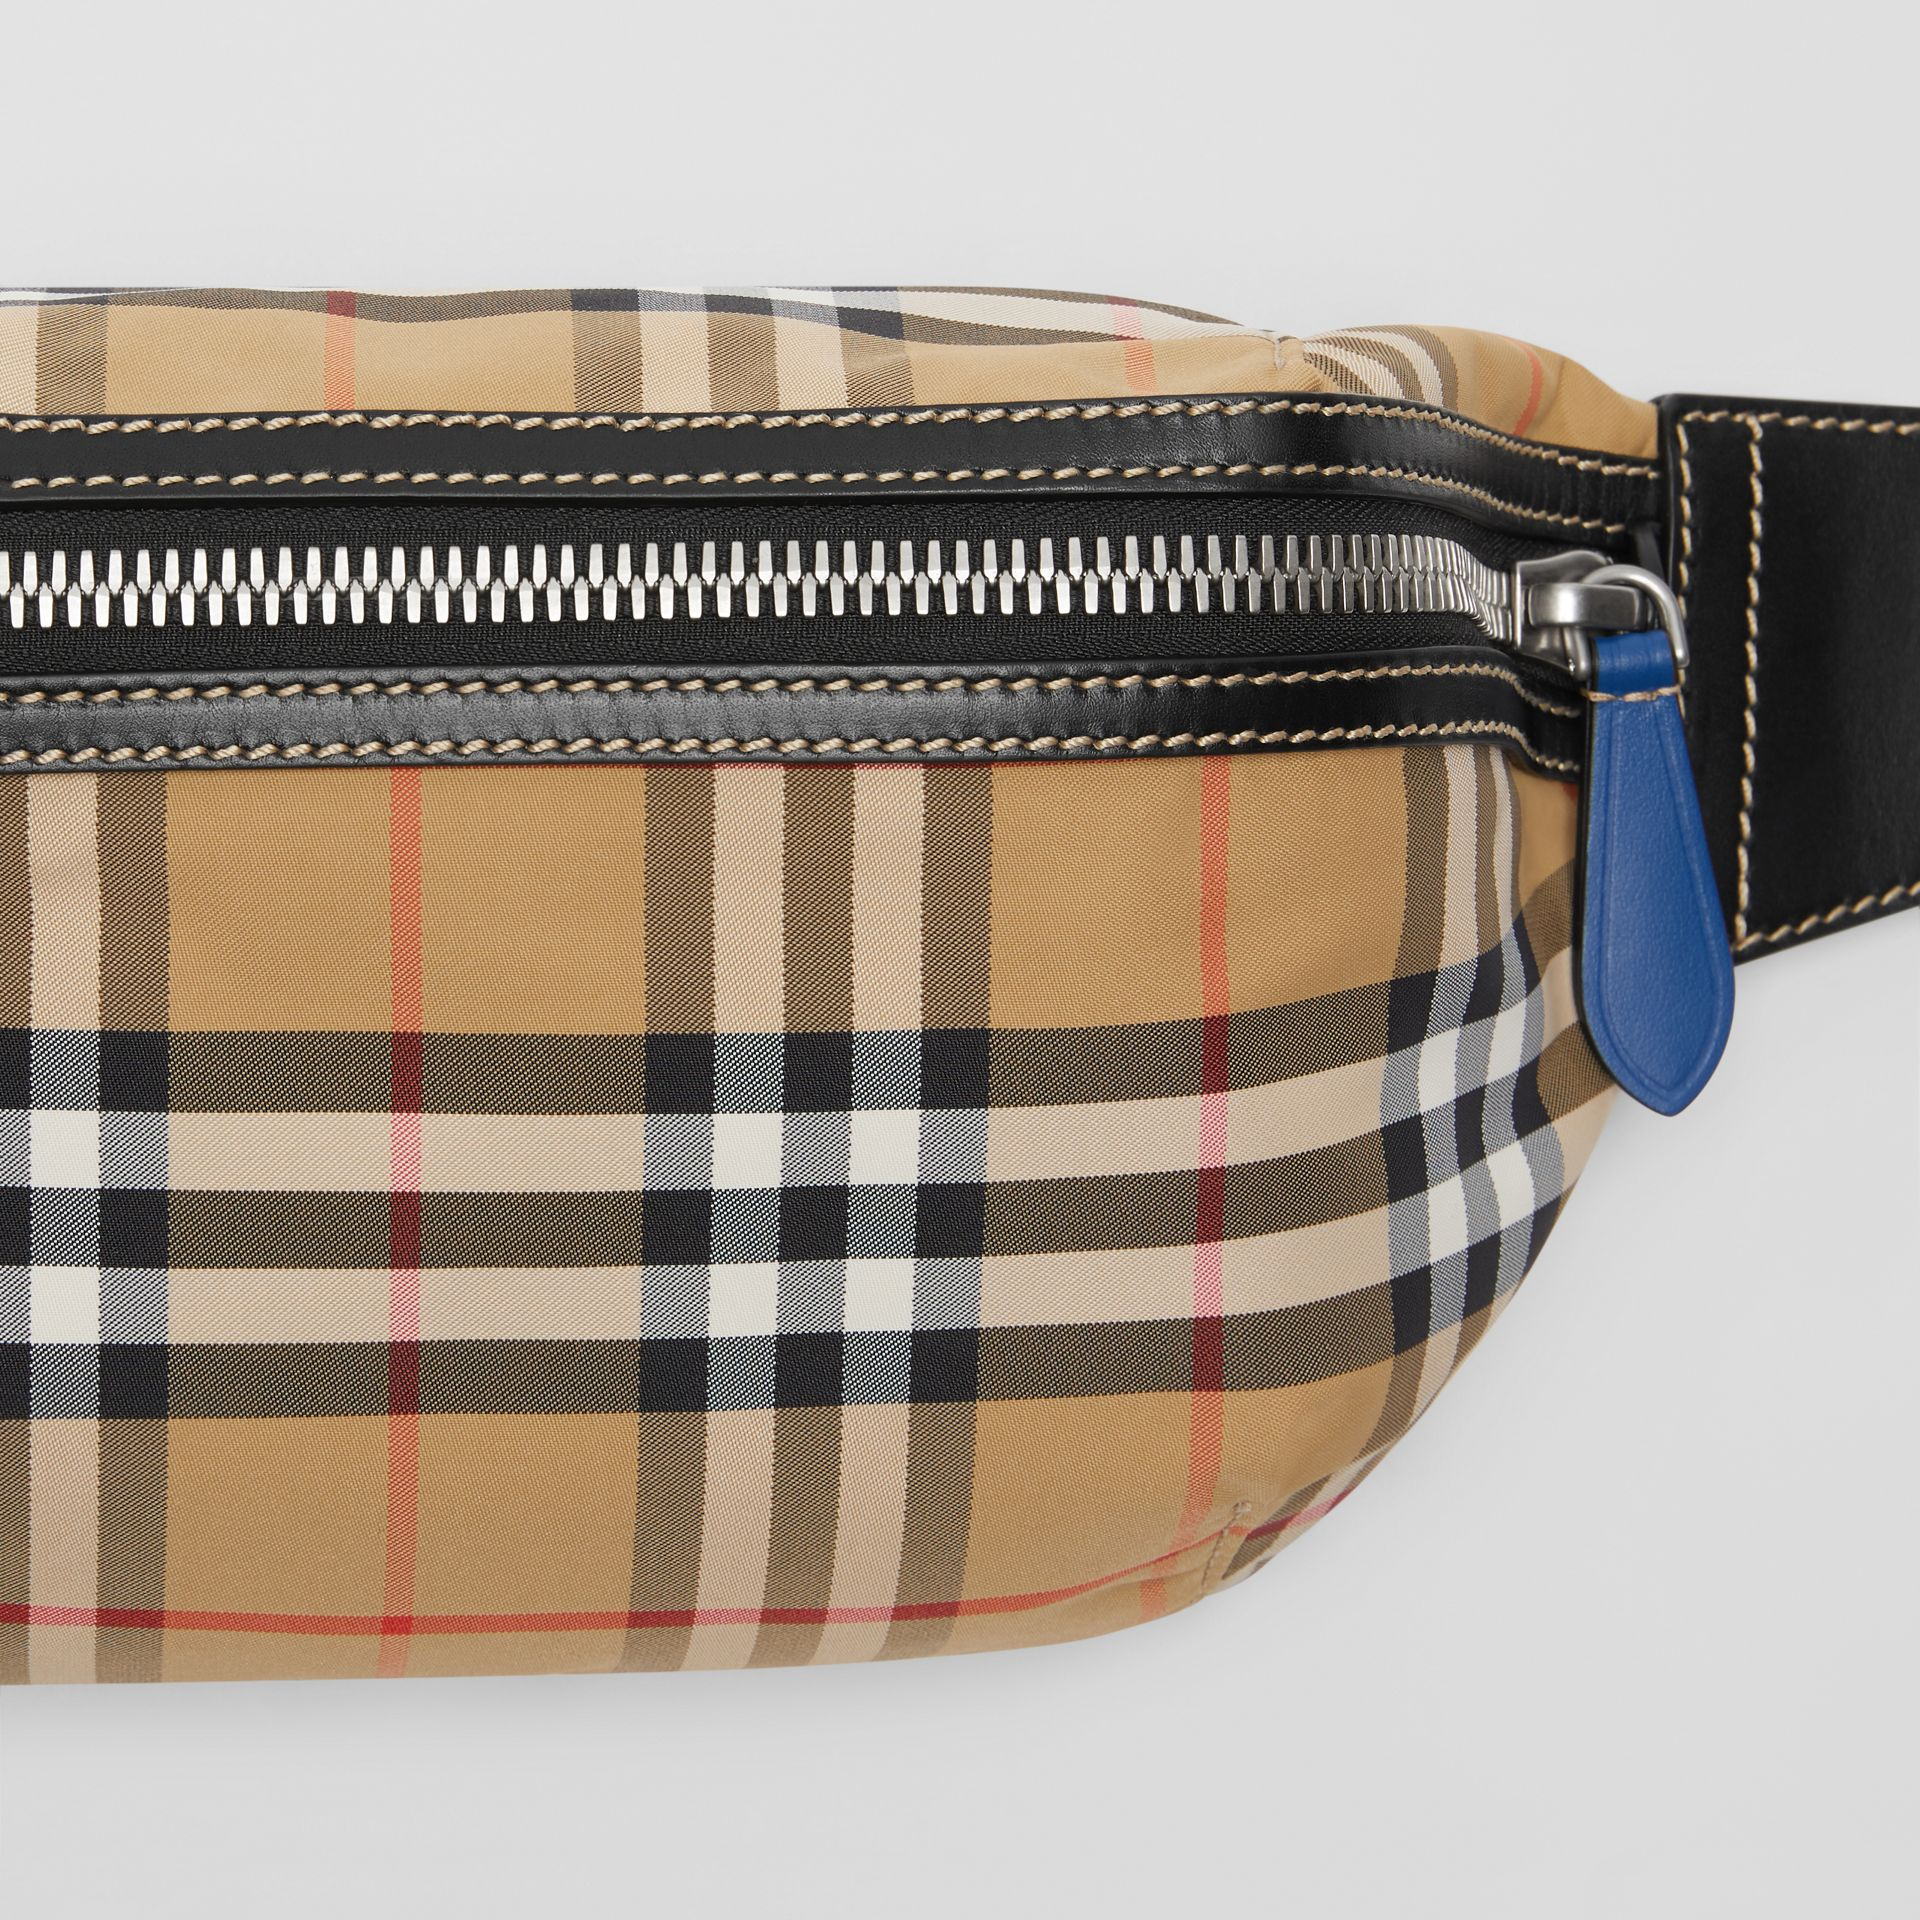 Medium Vintage Check Bum Bag in Antique Yellow | Burberry Singapore - gallery image 1